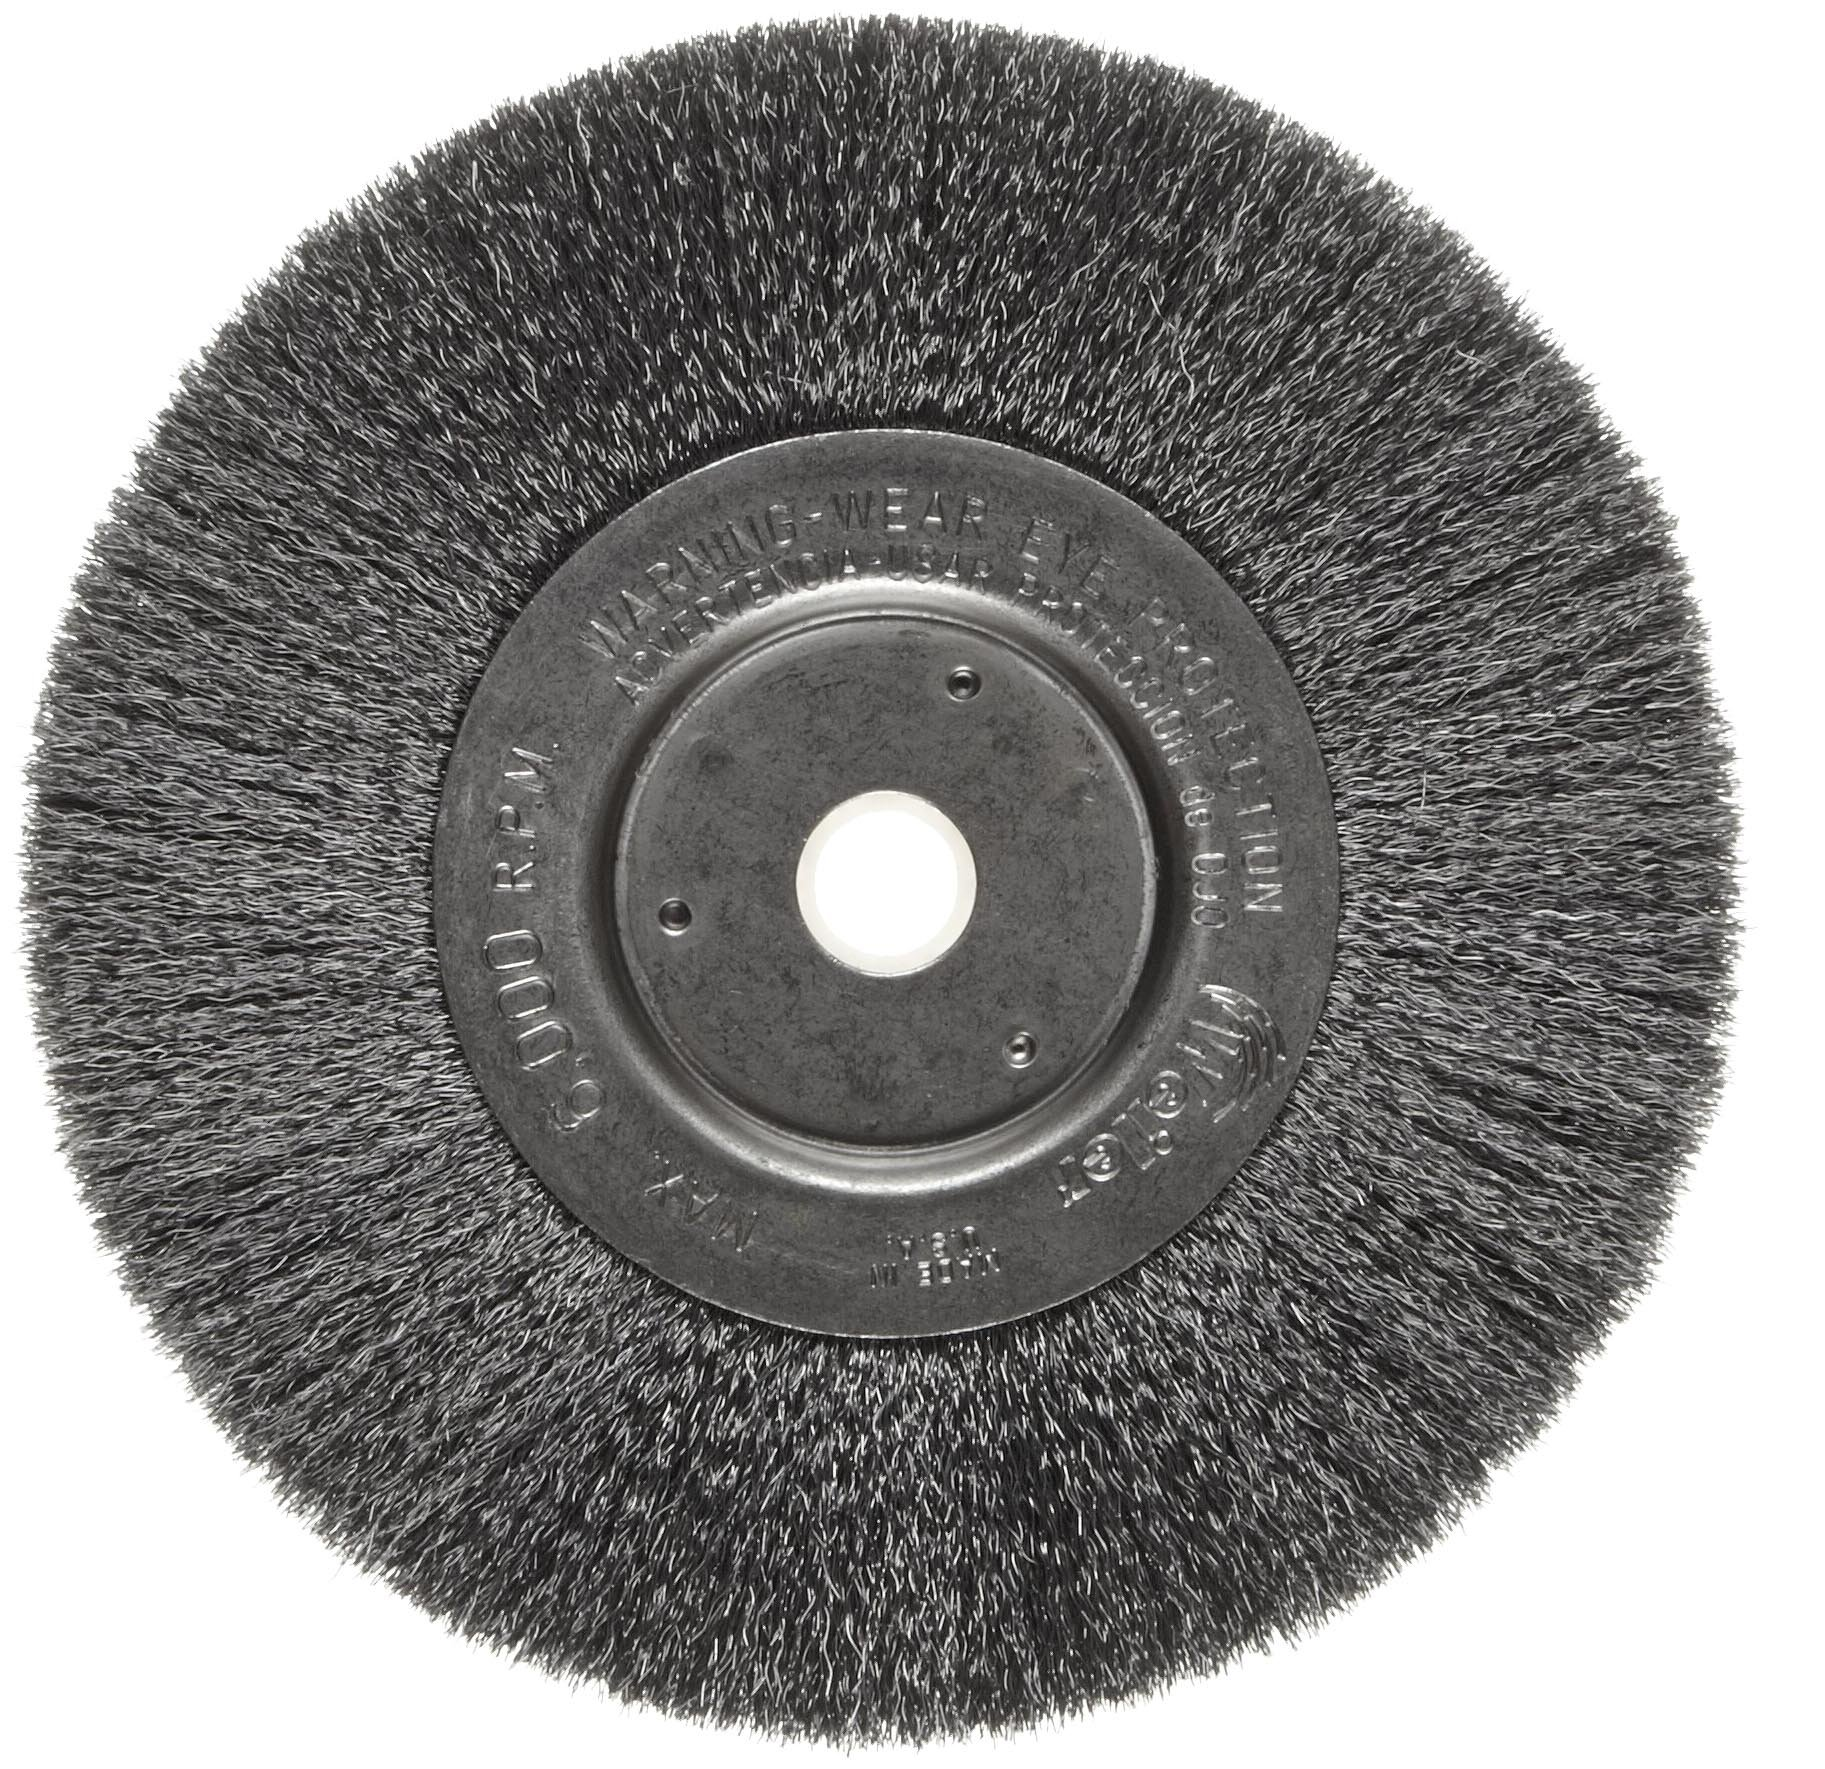 Weiler Trulock Narrow Face Wire Wheel Brush, Round Hole, Steel, Crimped Wire, 6'' Diameter, 0.006'' Wire Diameter, 5/8-1/2'' Arbor, 1-7/16'' Bristle Length, 3/4'' Brush Face Width, 6000 rpm